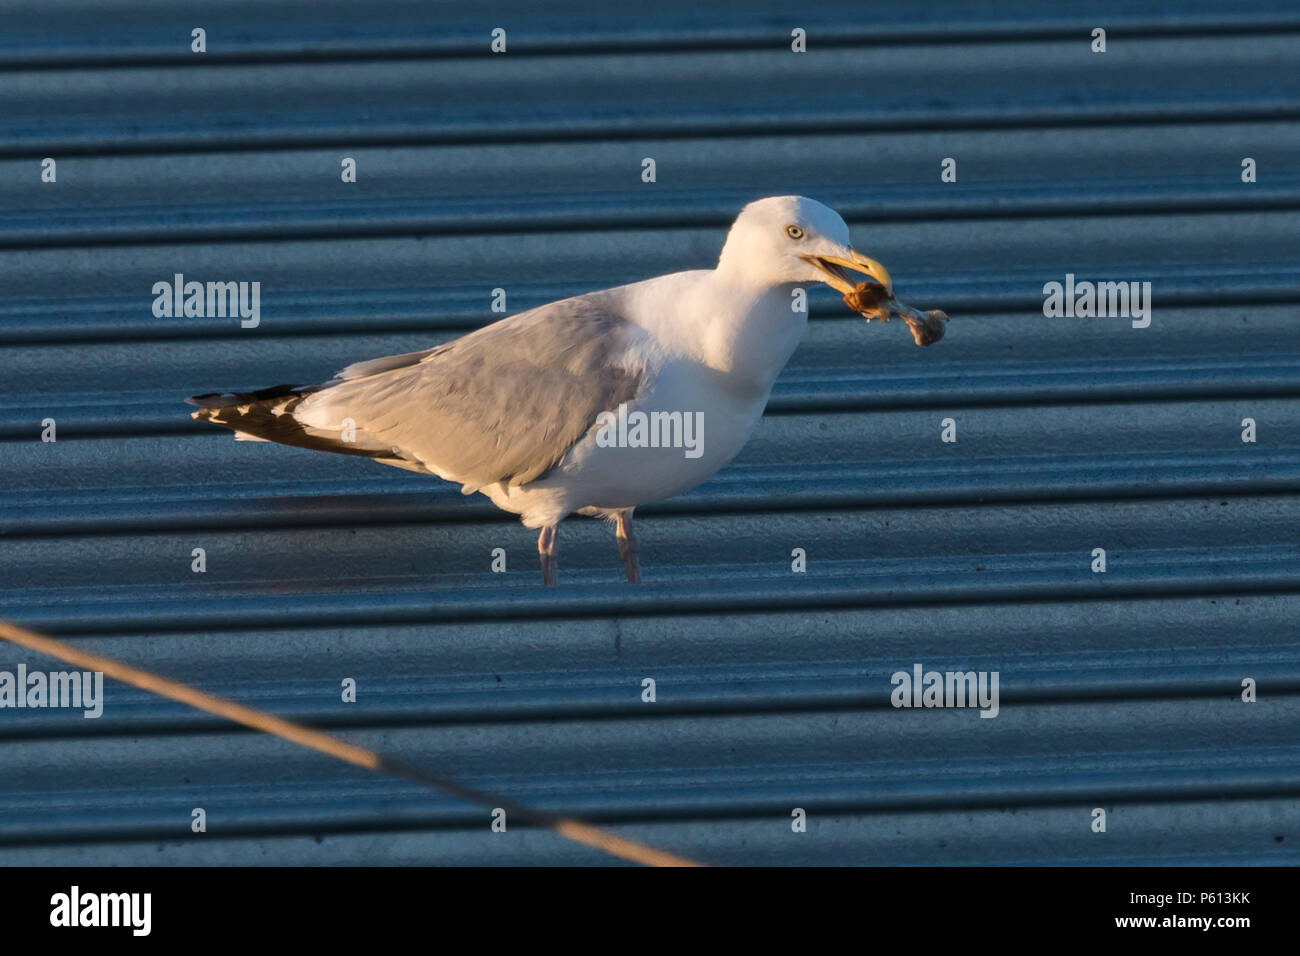 Wembley Park, London, UK. 27th Jun, 2018. A Seagull enjoys a sunset feast on the remains of a fried chicken leg on the roof of an Asda Supermarket, Wembley Park, London, UK. Credit: amanda rose/Alamy Live News Credit: amanda rose/Alamy Live News - Stock Image